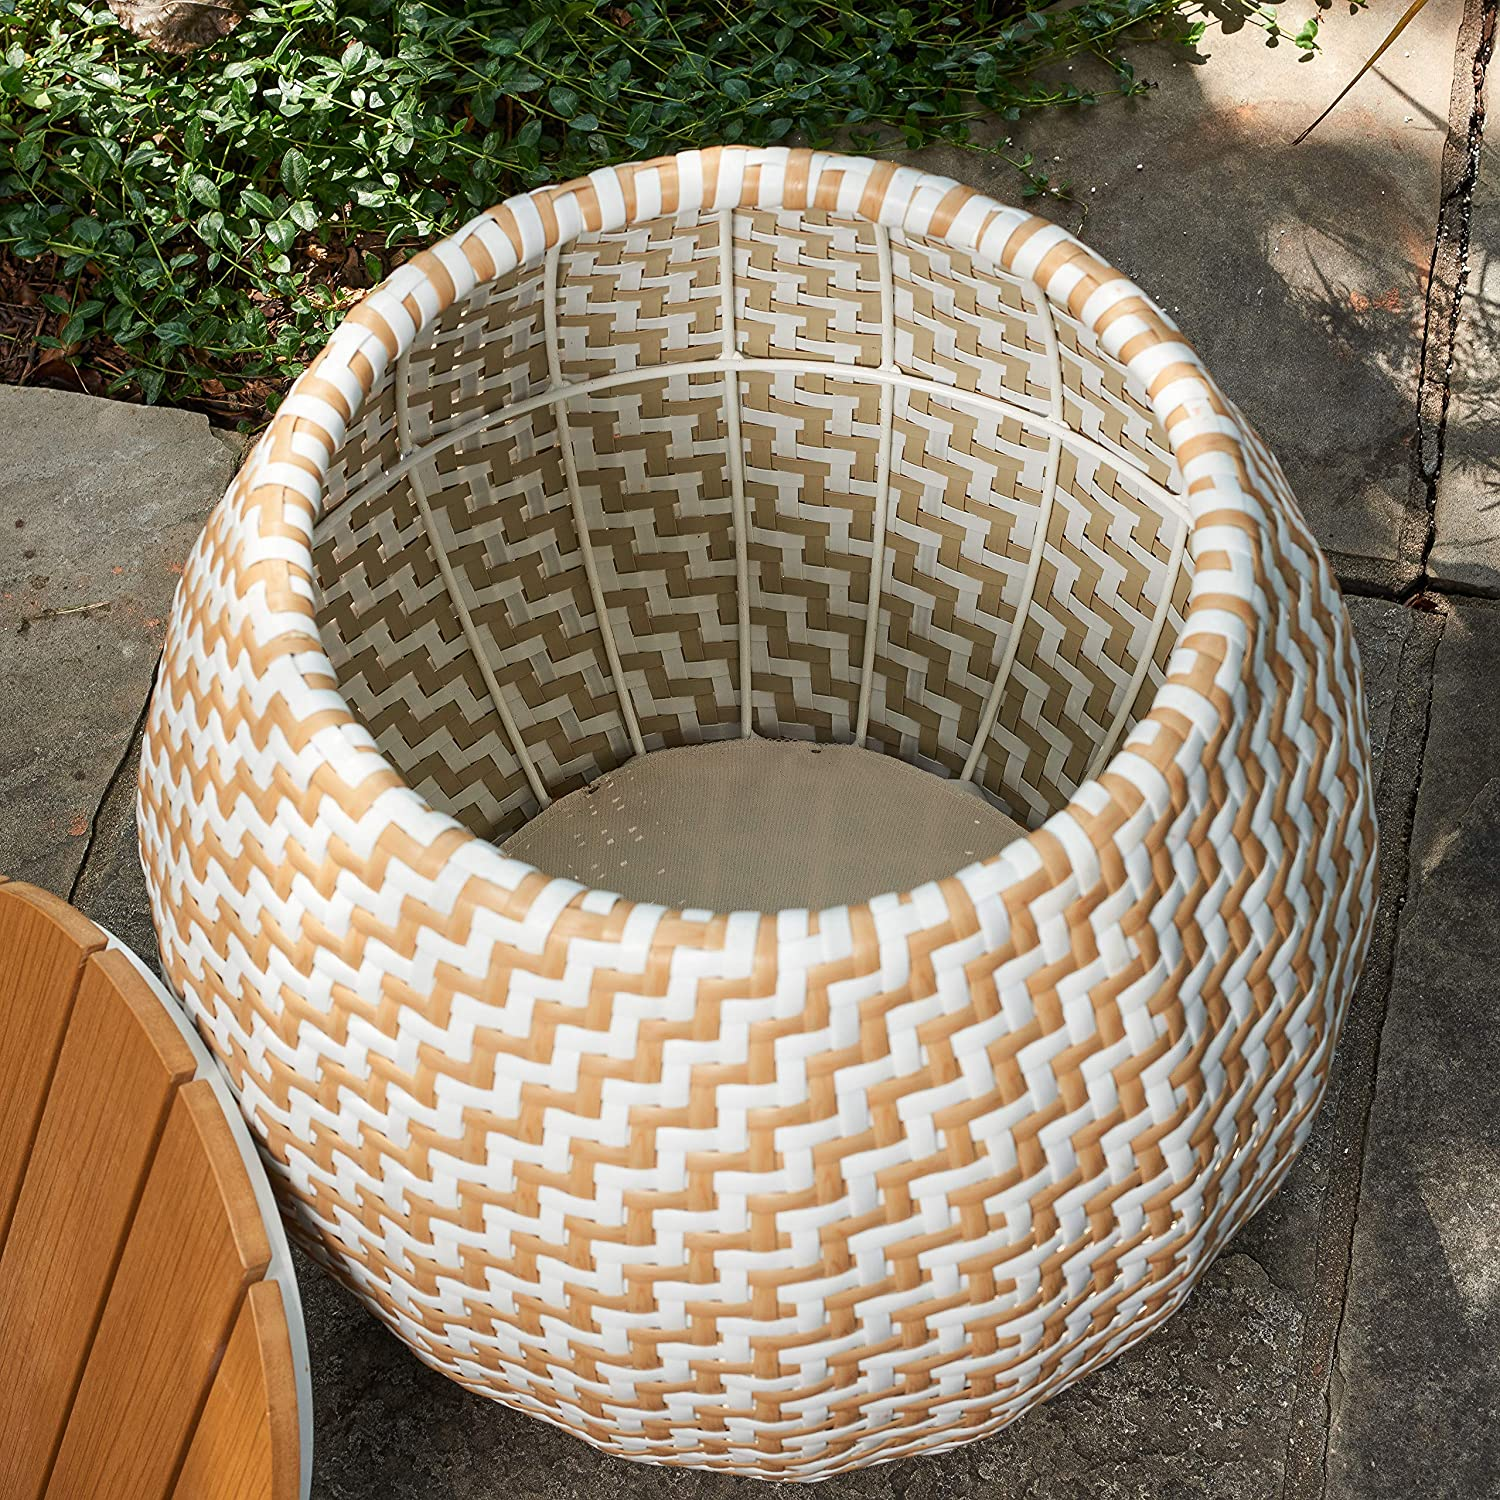 Quality Outdoor Living 65 Yzst02 Amelia Chevron Side Table With Storage Tan White Wicker Amazon Ca Patio Lawn Garden